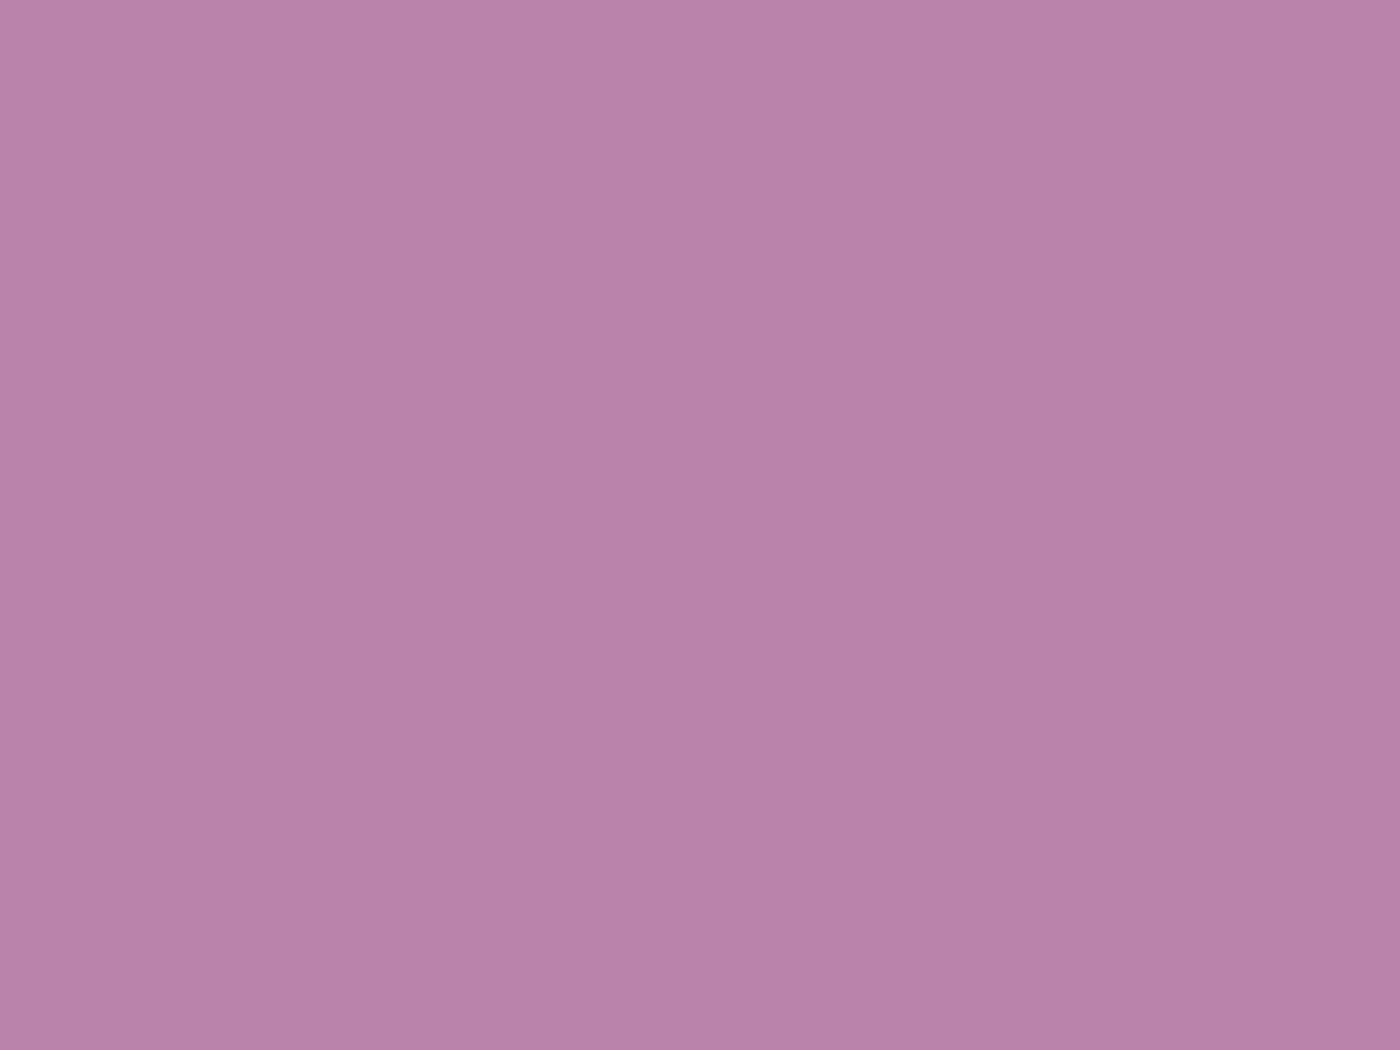 1400x1050 Opera Mauve Solid Color Background